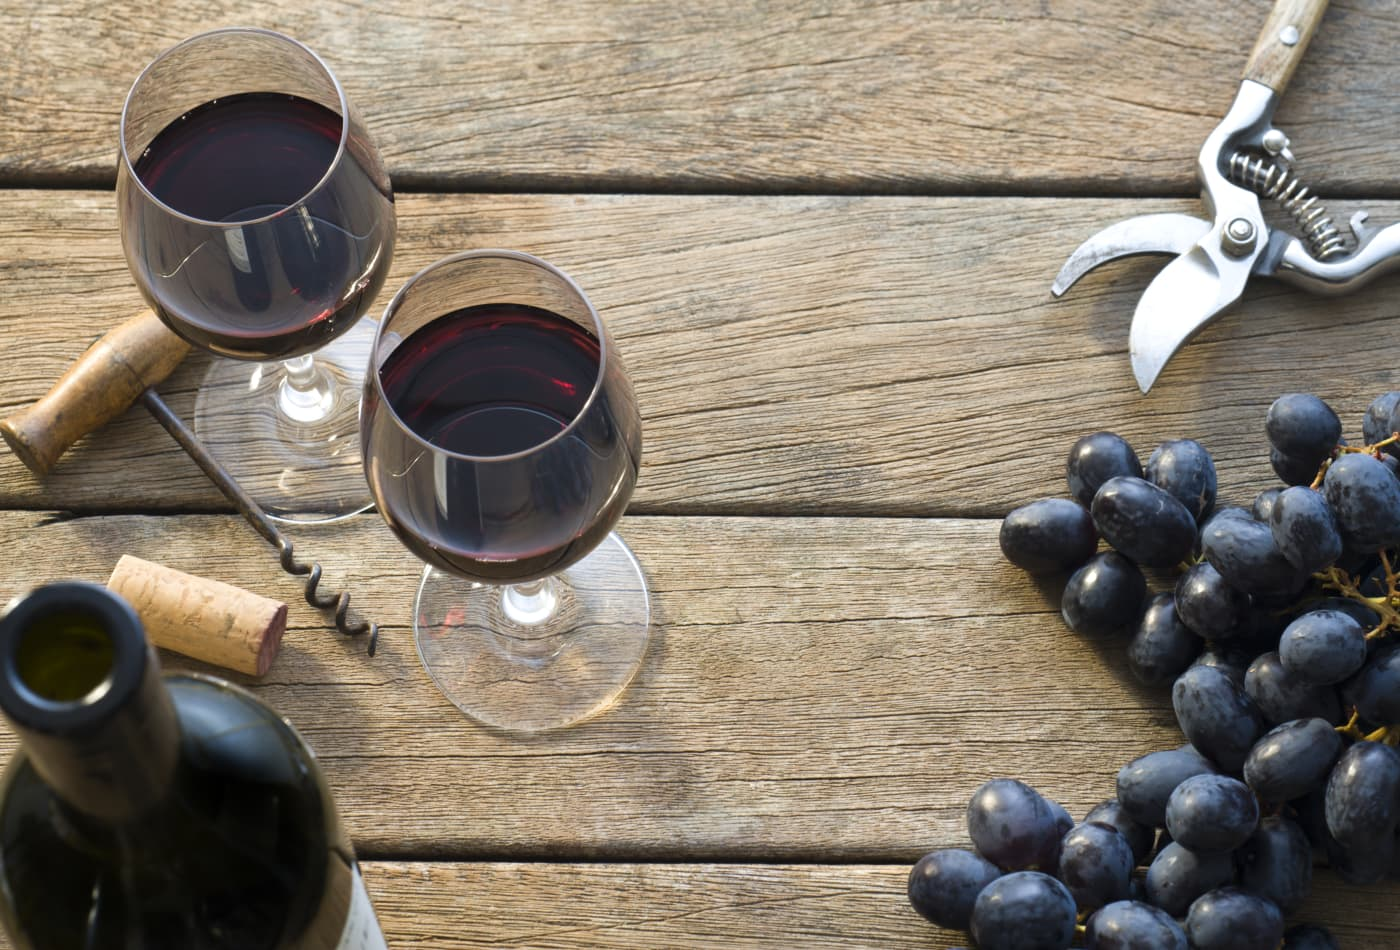 How a process using 'fluid' carbon dioxide could stop your wine from spoiling